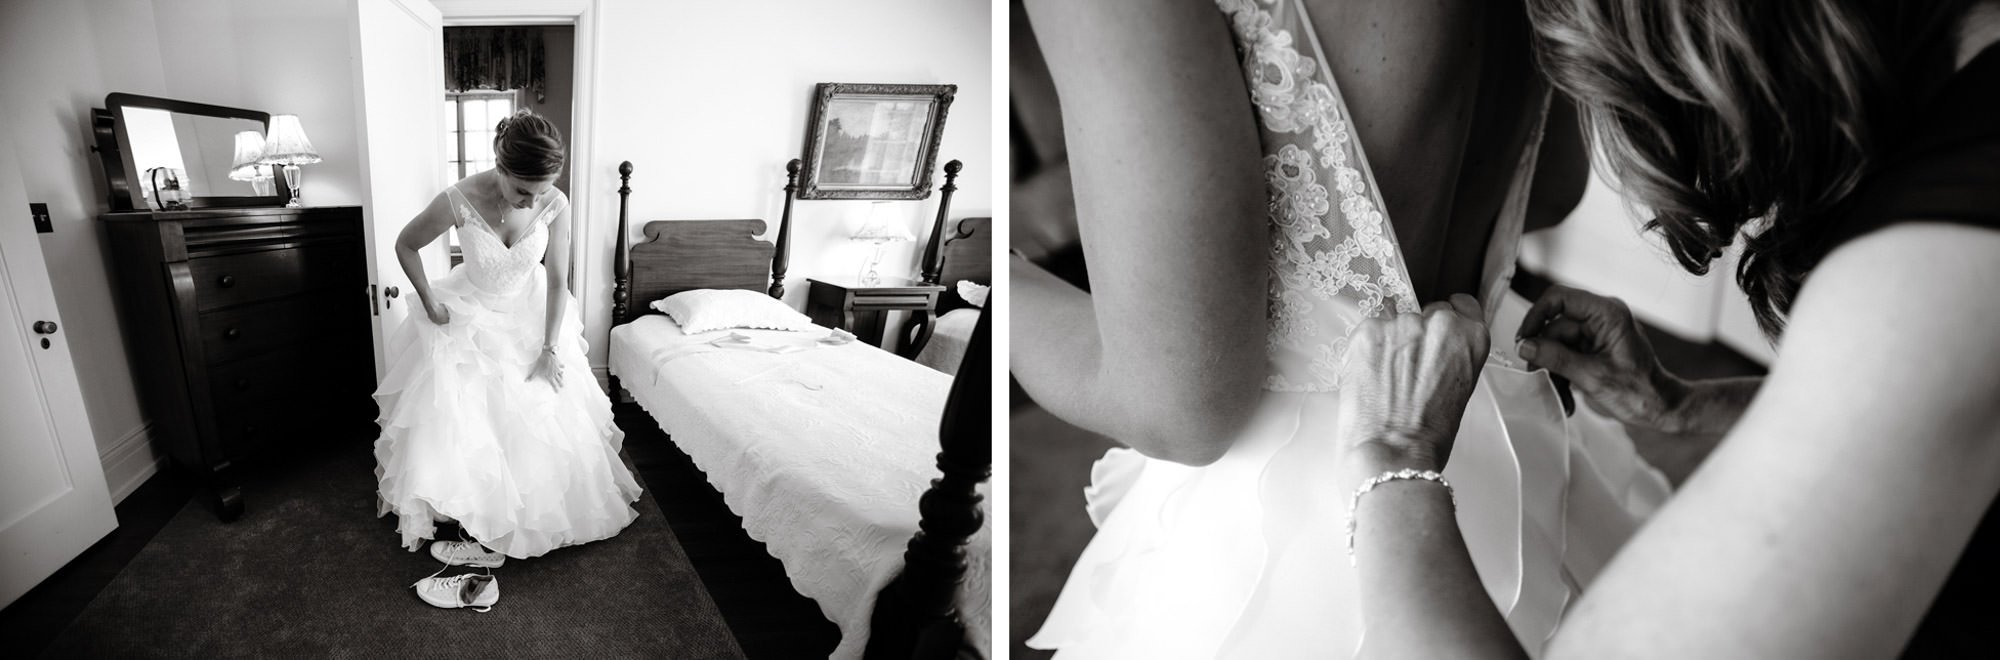 The bride's mother puts on her daughter's wedding dress.